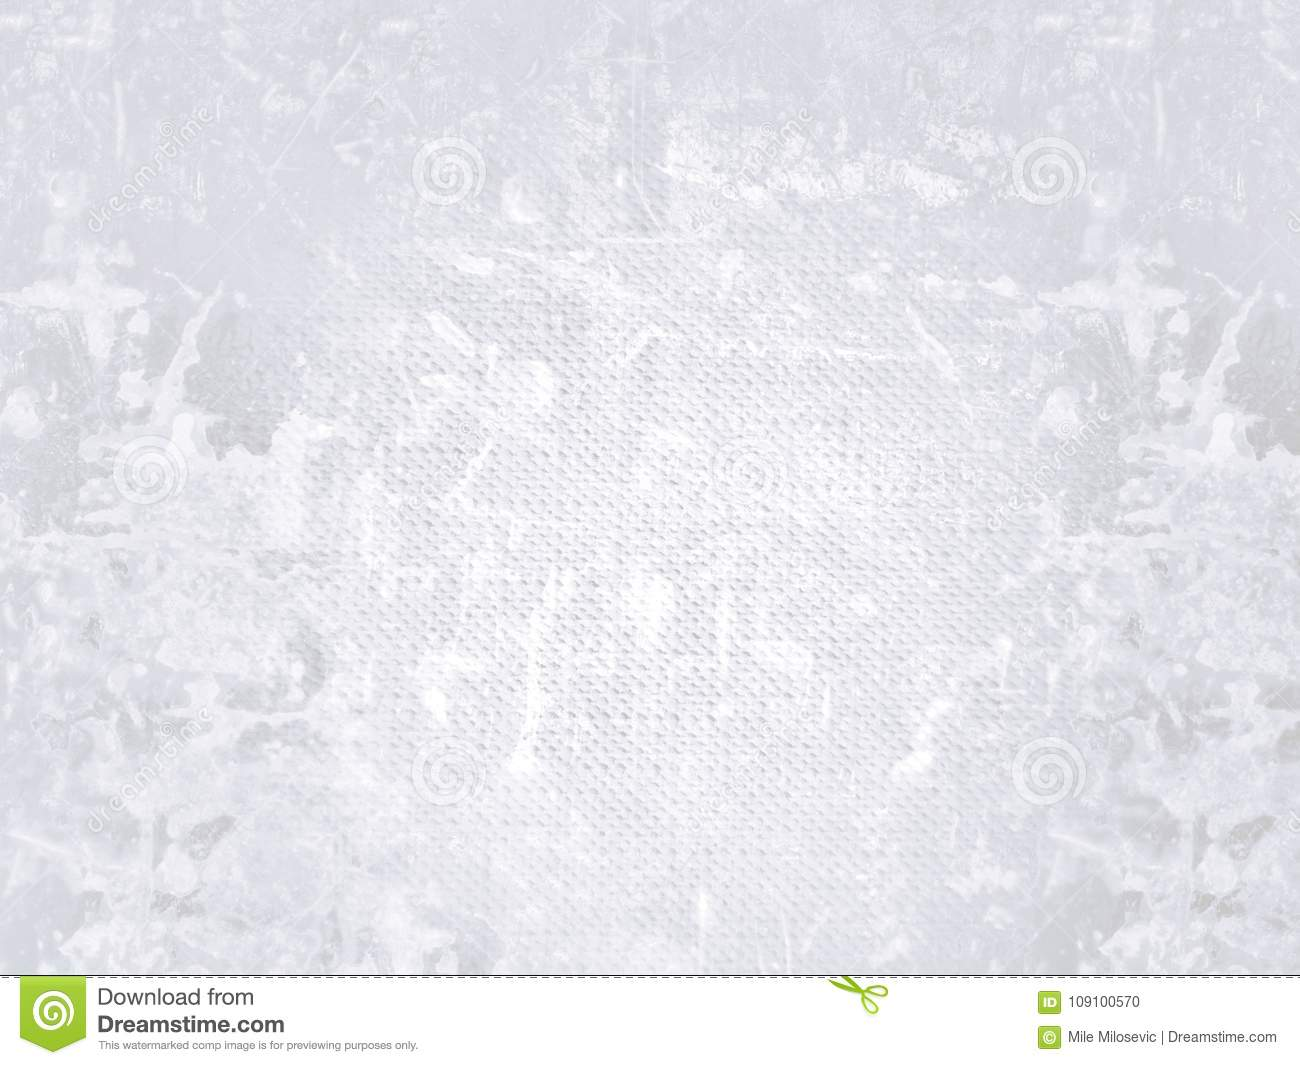 white paper texture background for design stock photo - image of